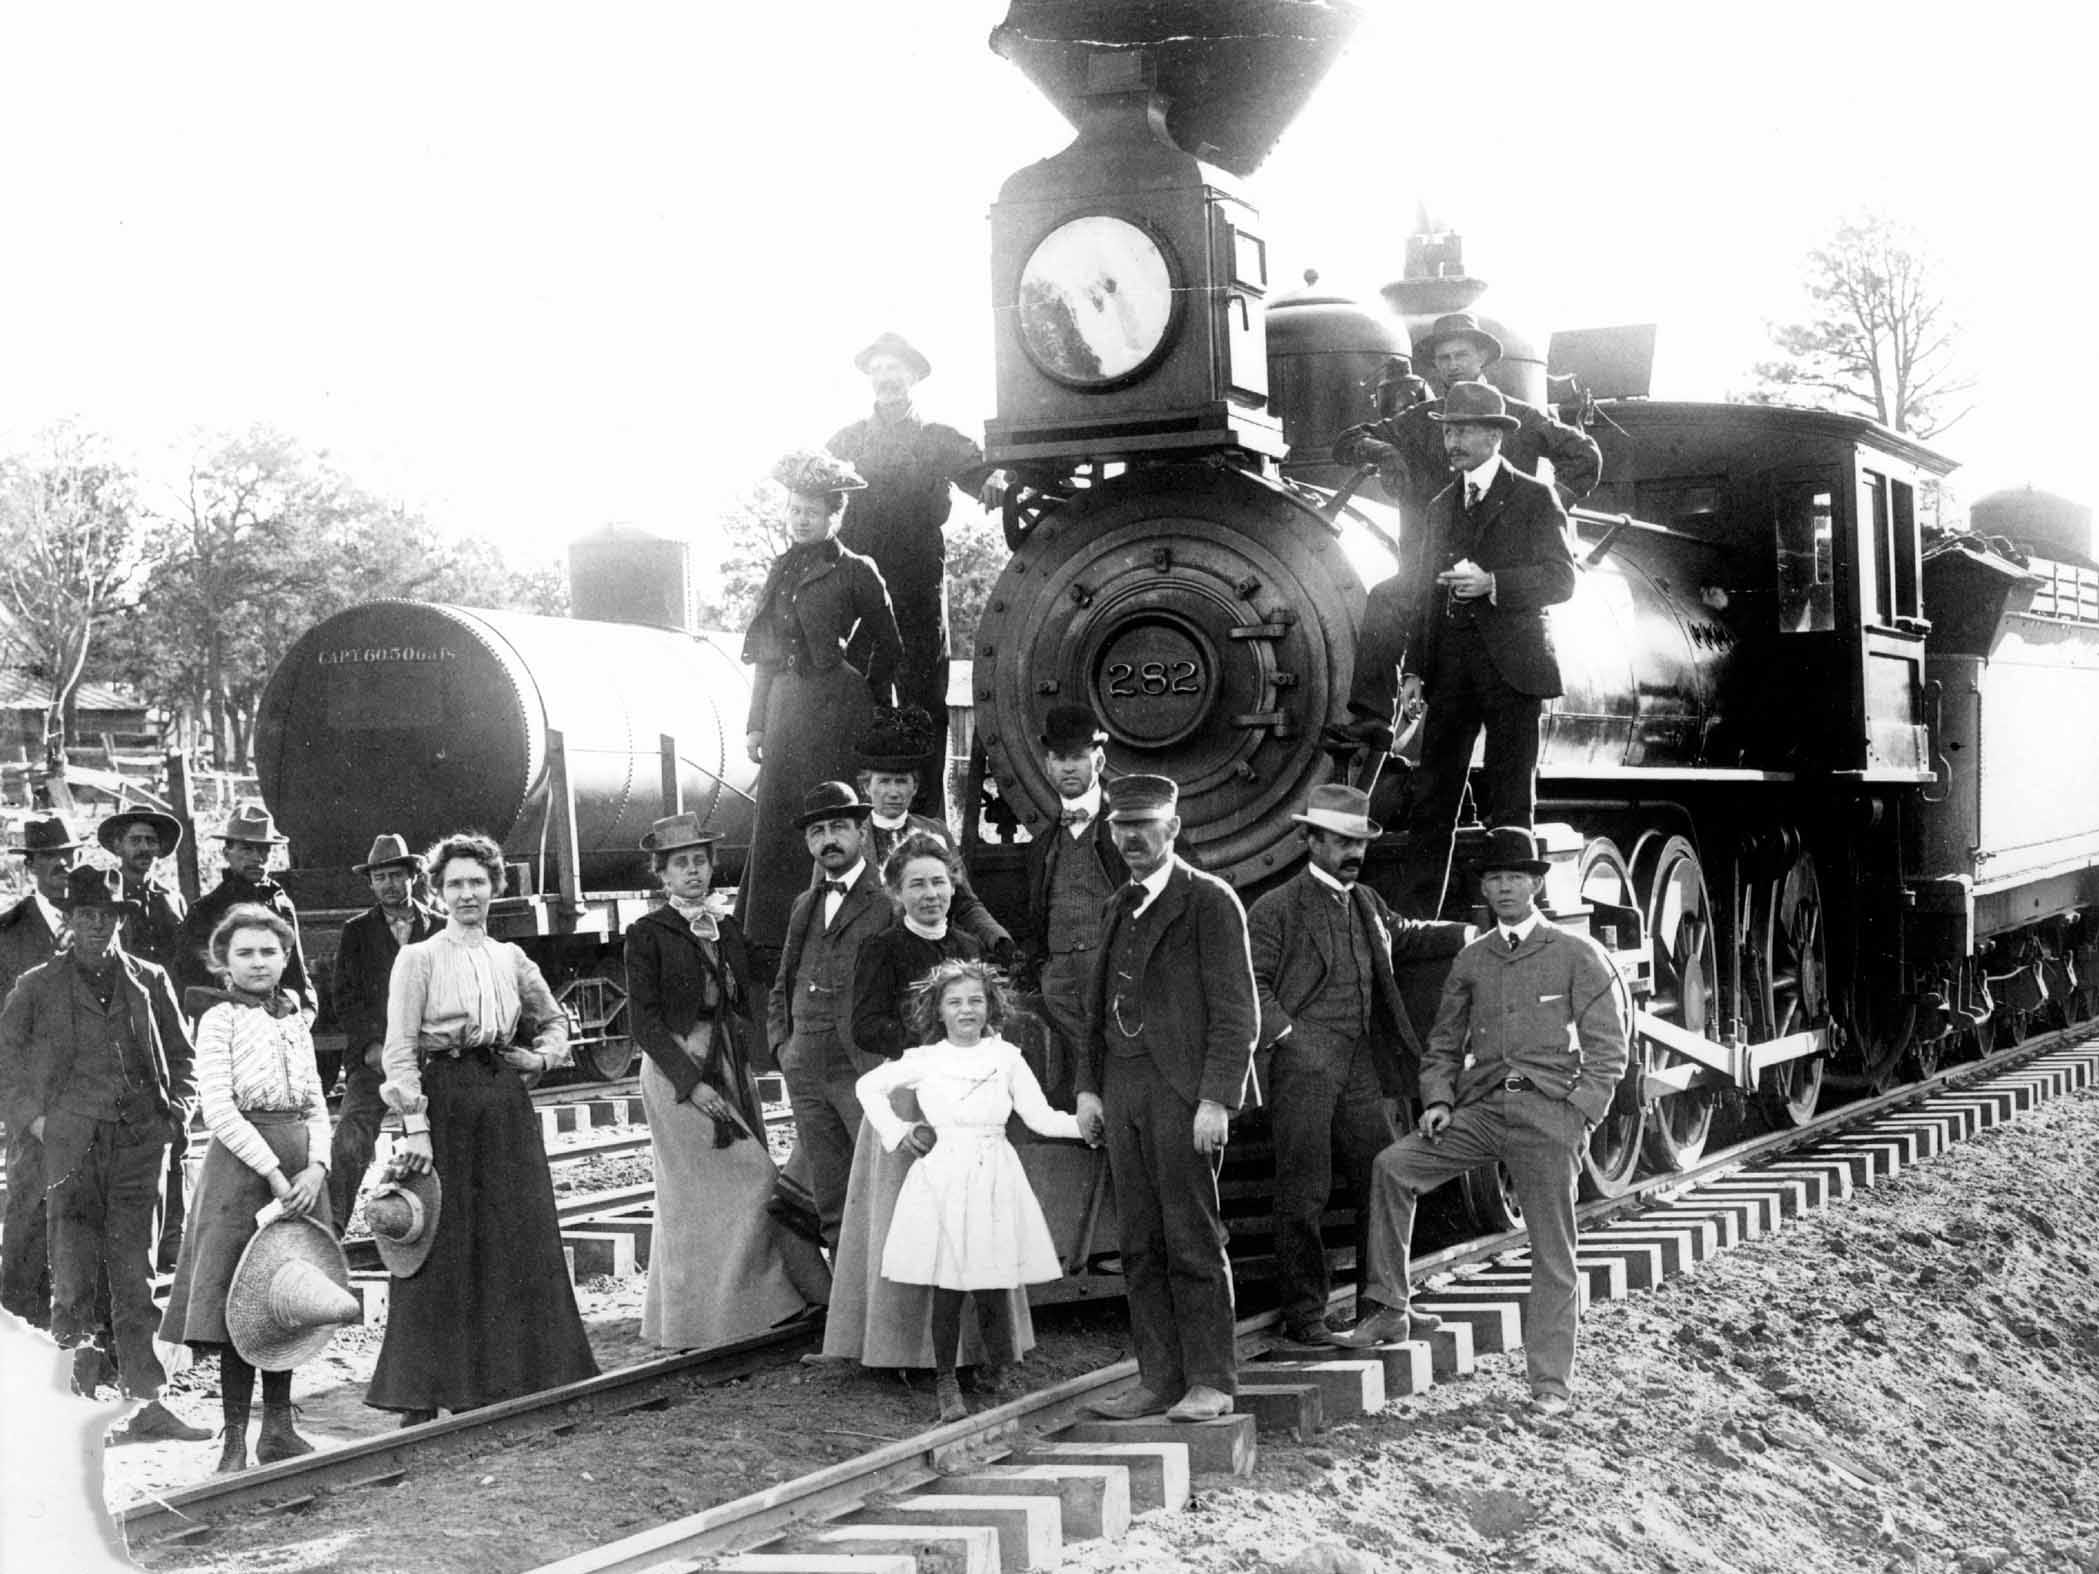 The first train to arrive at Grand Canyon Village, Sept. 17, 1901. The train would boost tourism exponentially.